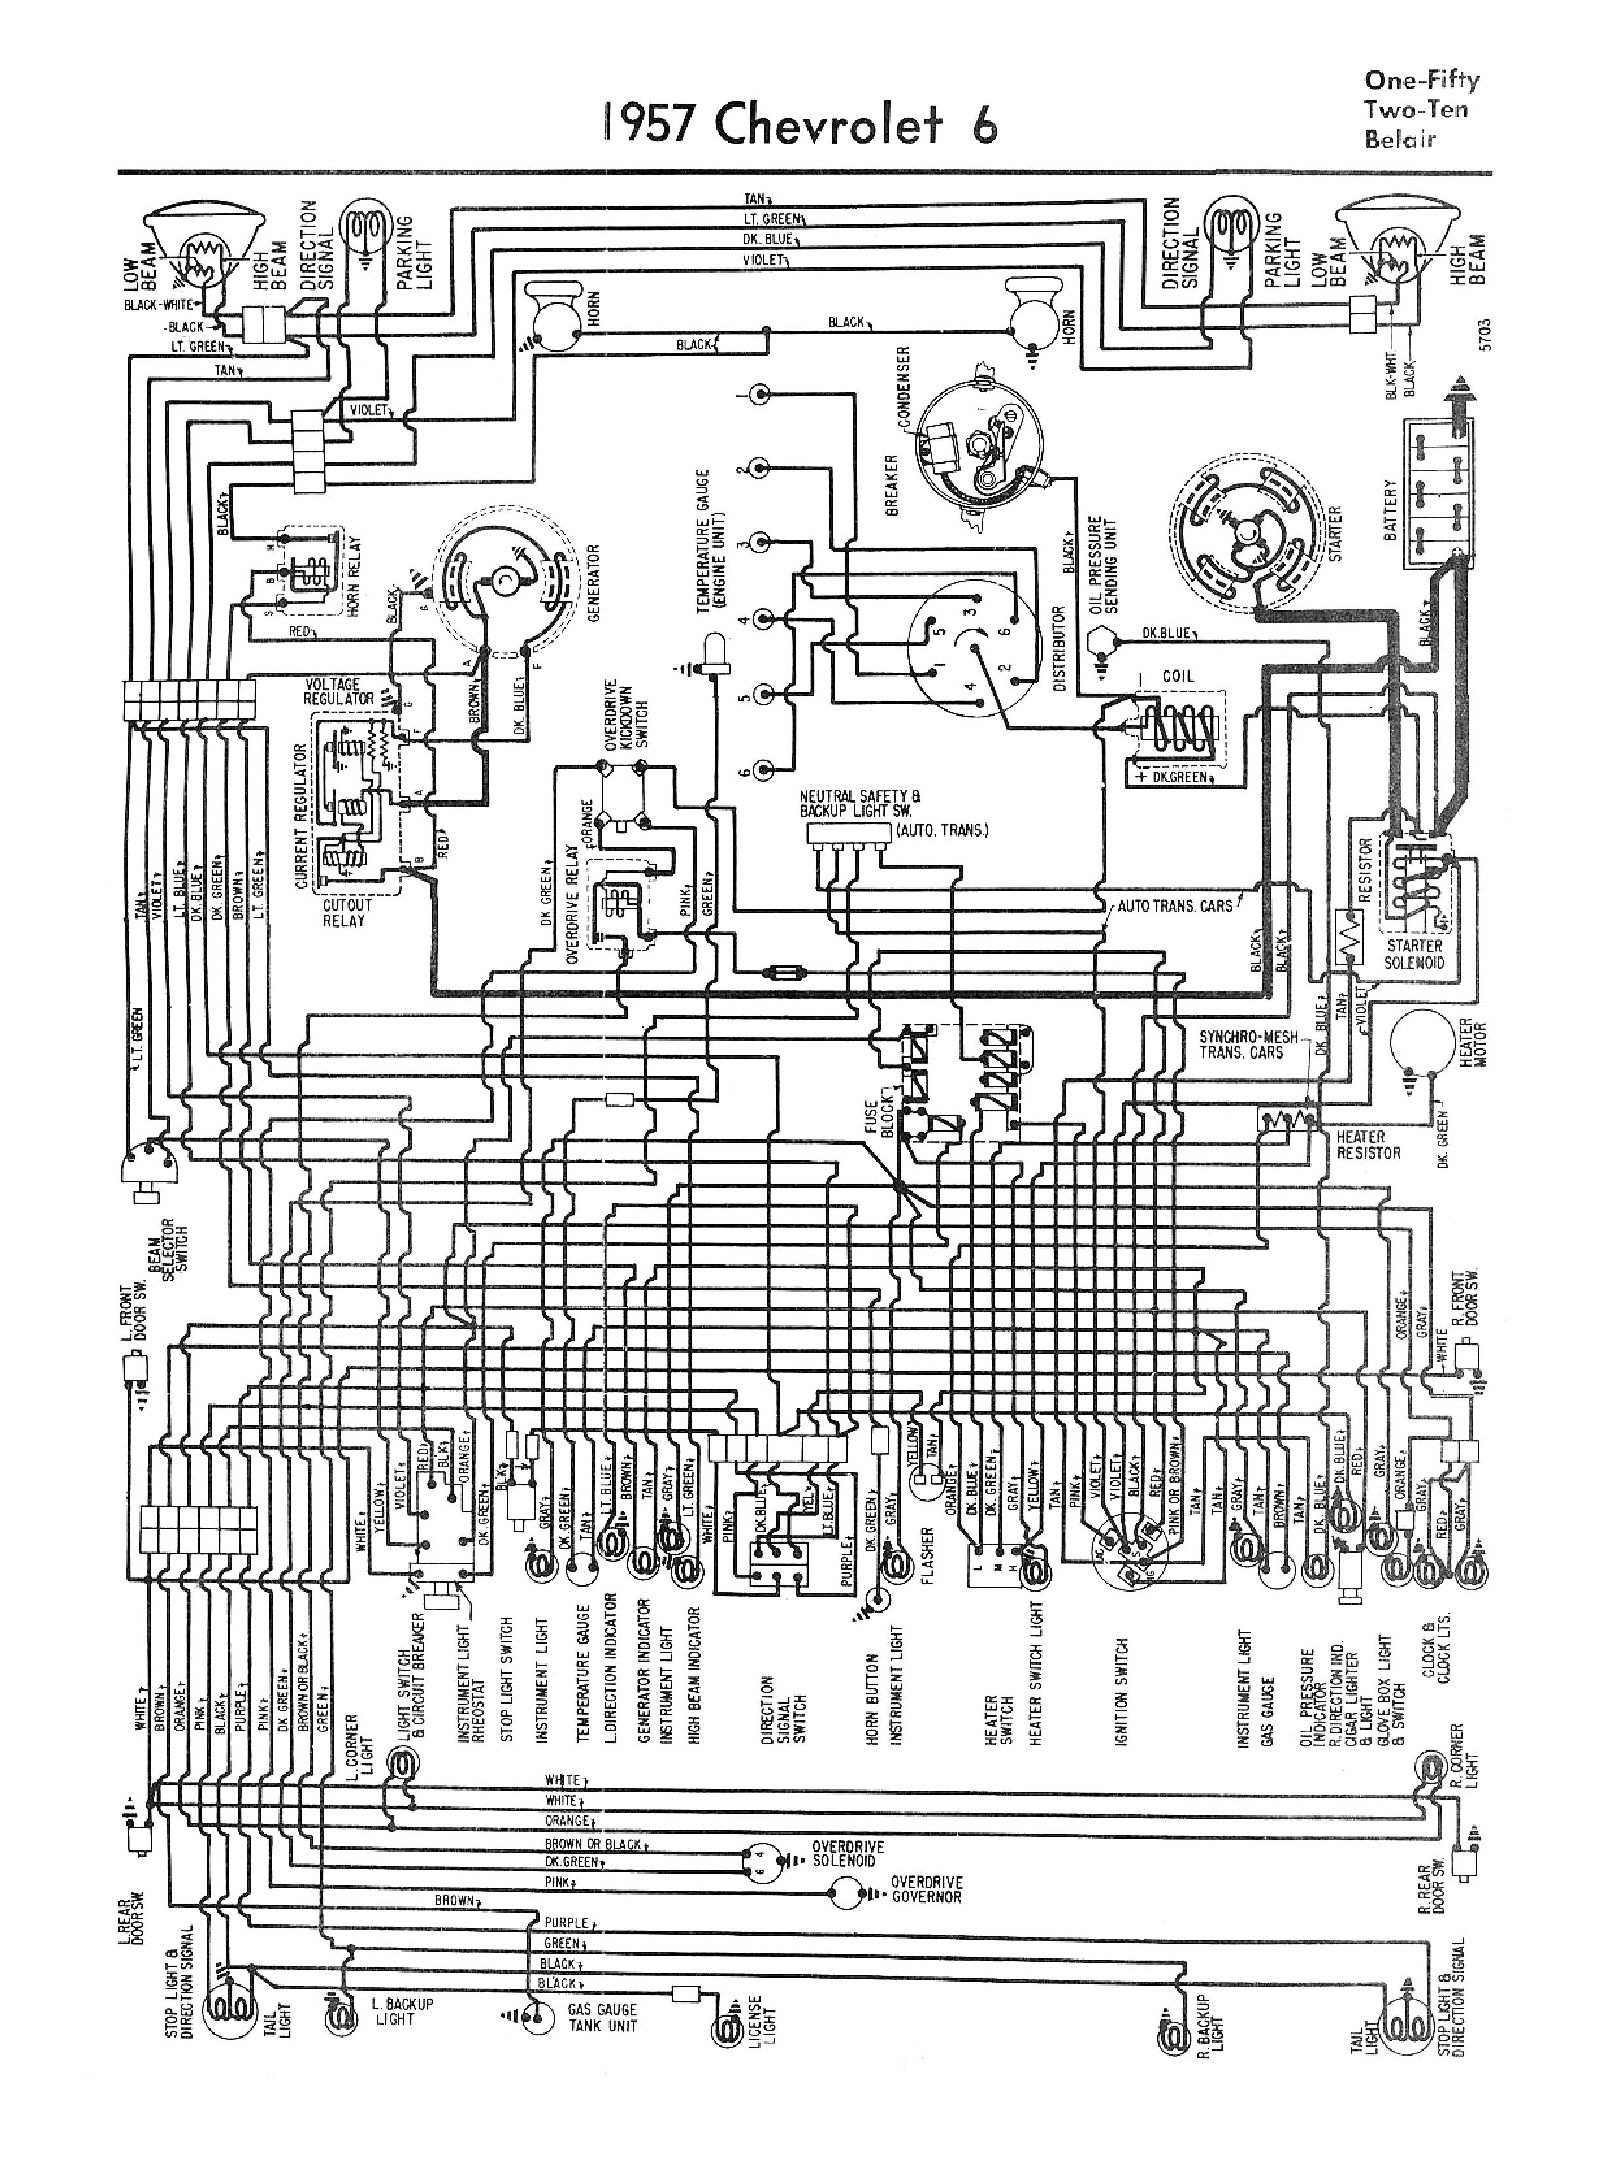 wiring diagram 1972 corvette the wiring diagram 1979 corvette wiring diagram schematics and wiring diagrams wiring diagram